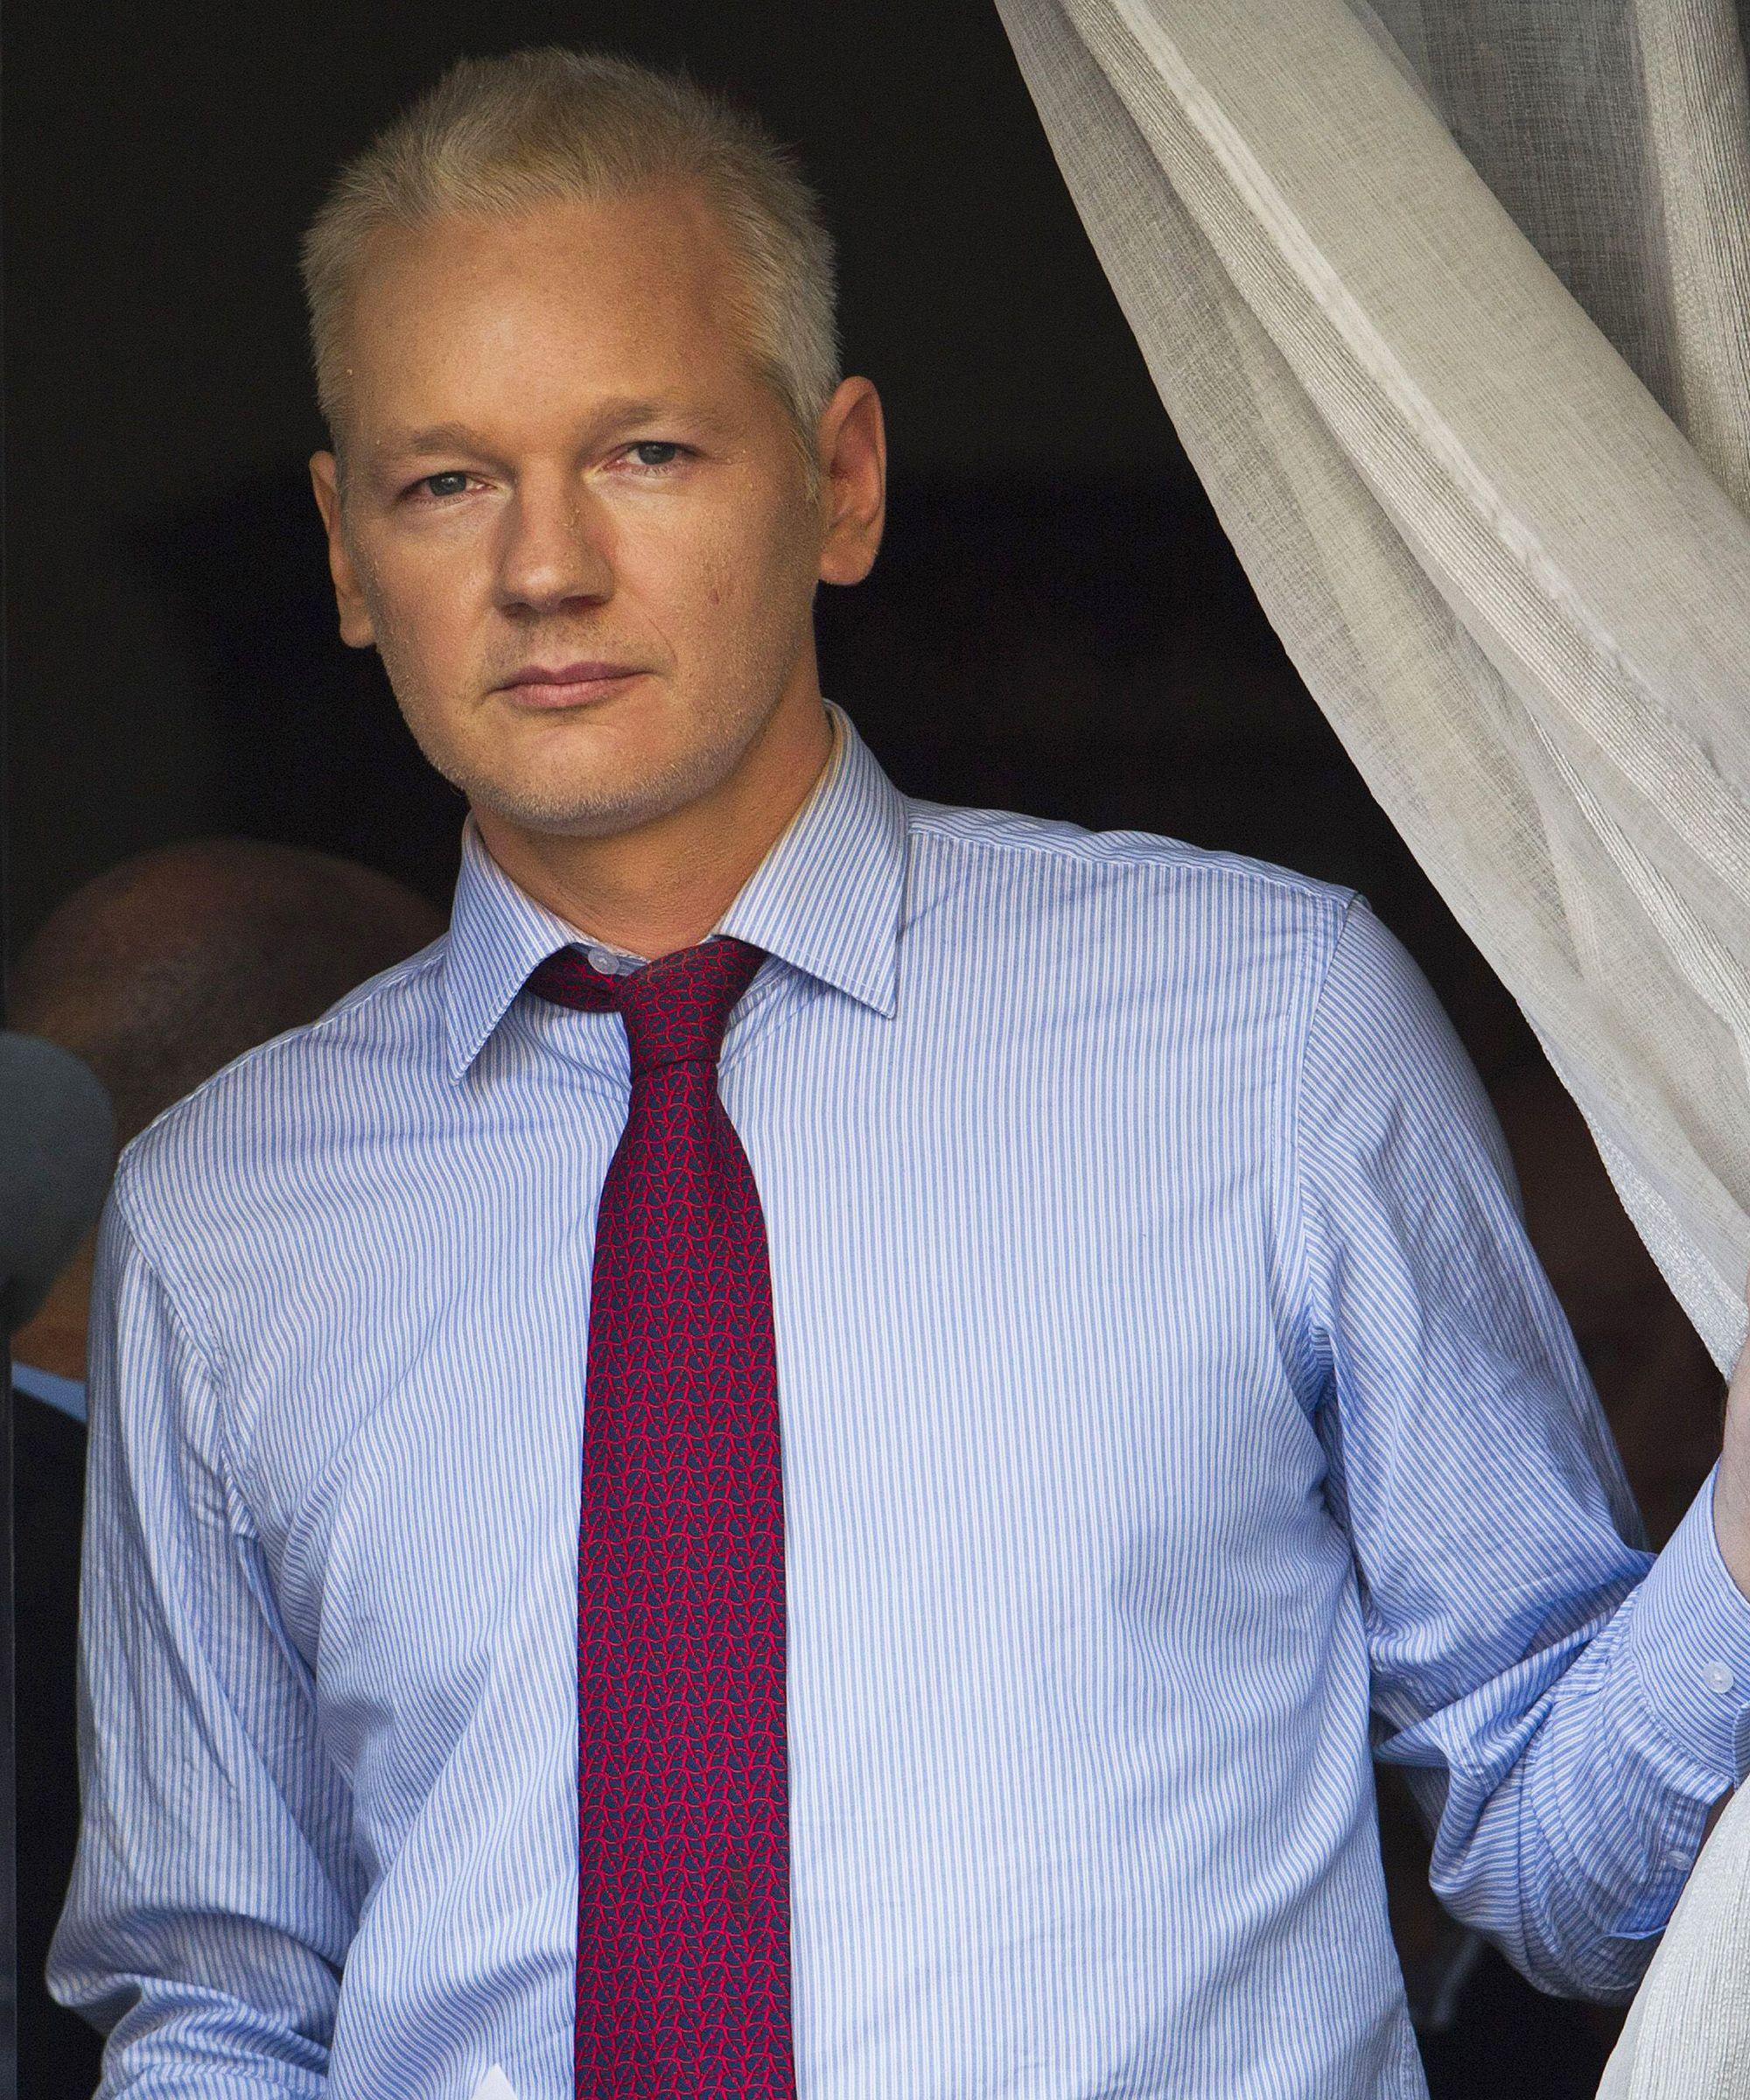 UN Says Julian Assange Should Walk Free